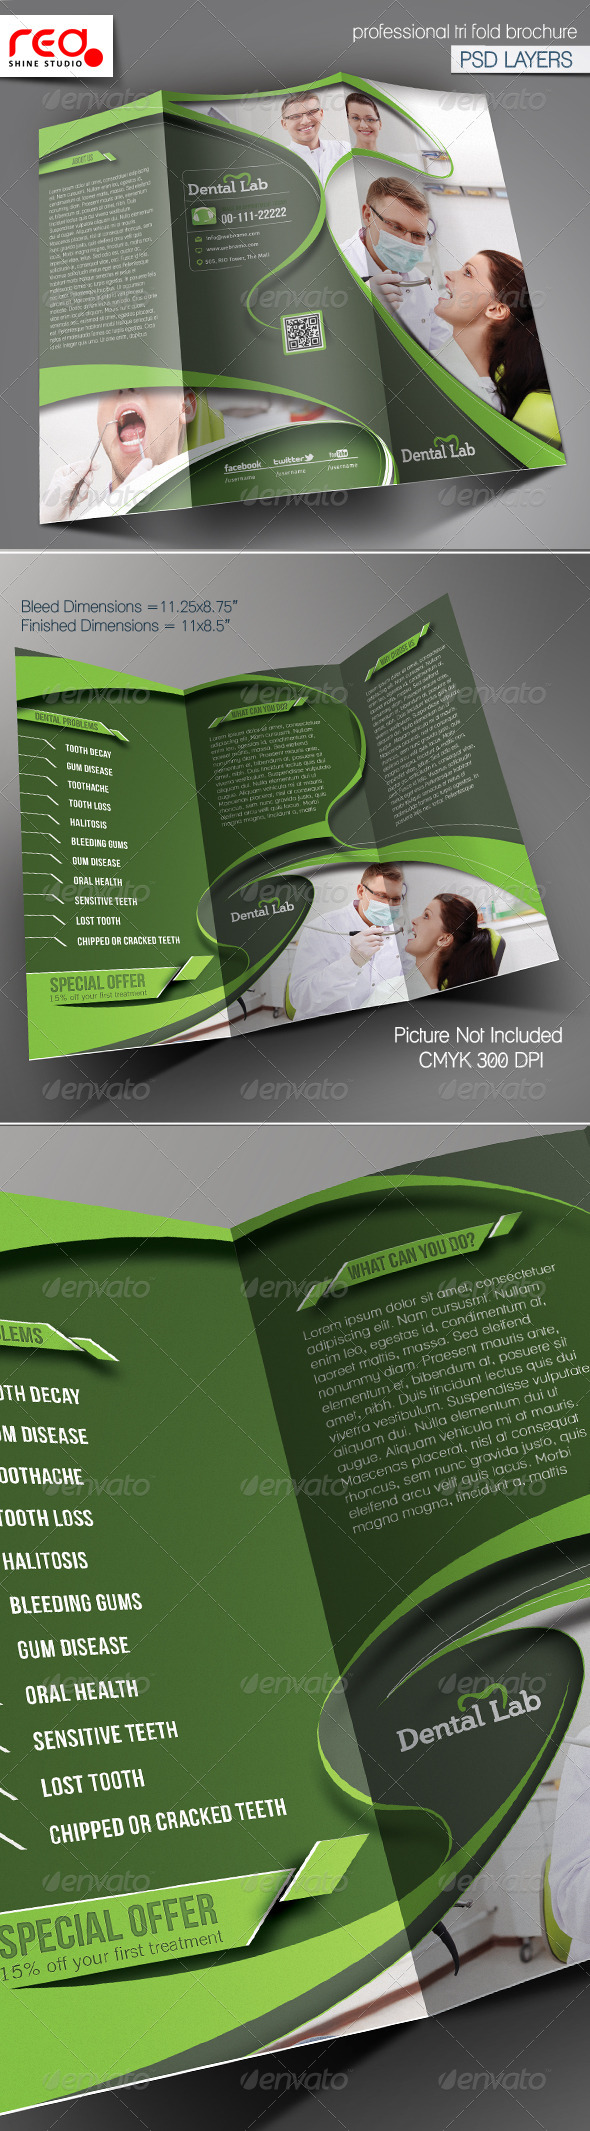 Dental Trifold Brochure Template - Corporate Brochures